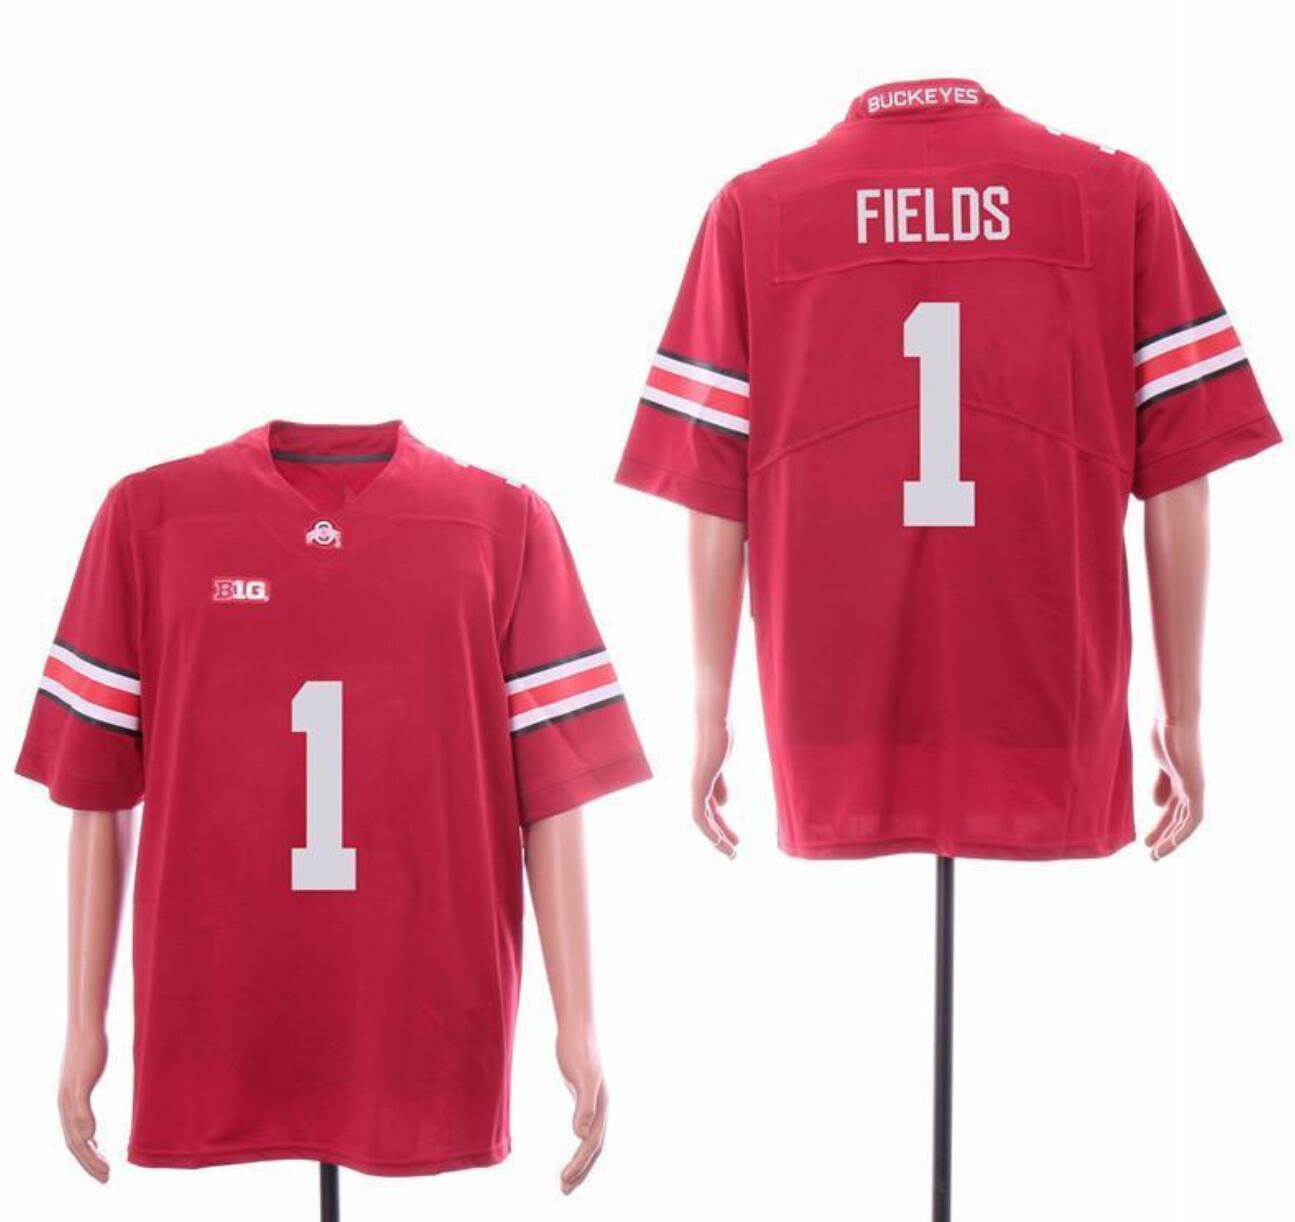 2019 College Justin Fields Ohio State Buckeyes Jersey NCAA 150e Adult Patch Hommes Jersey Tous Cousu Taille cadeau S-3XL